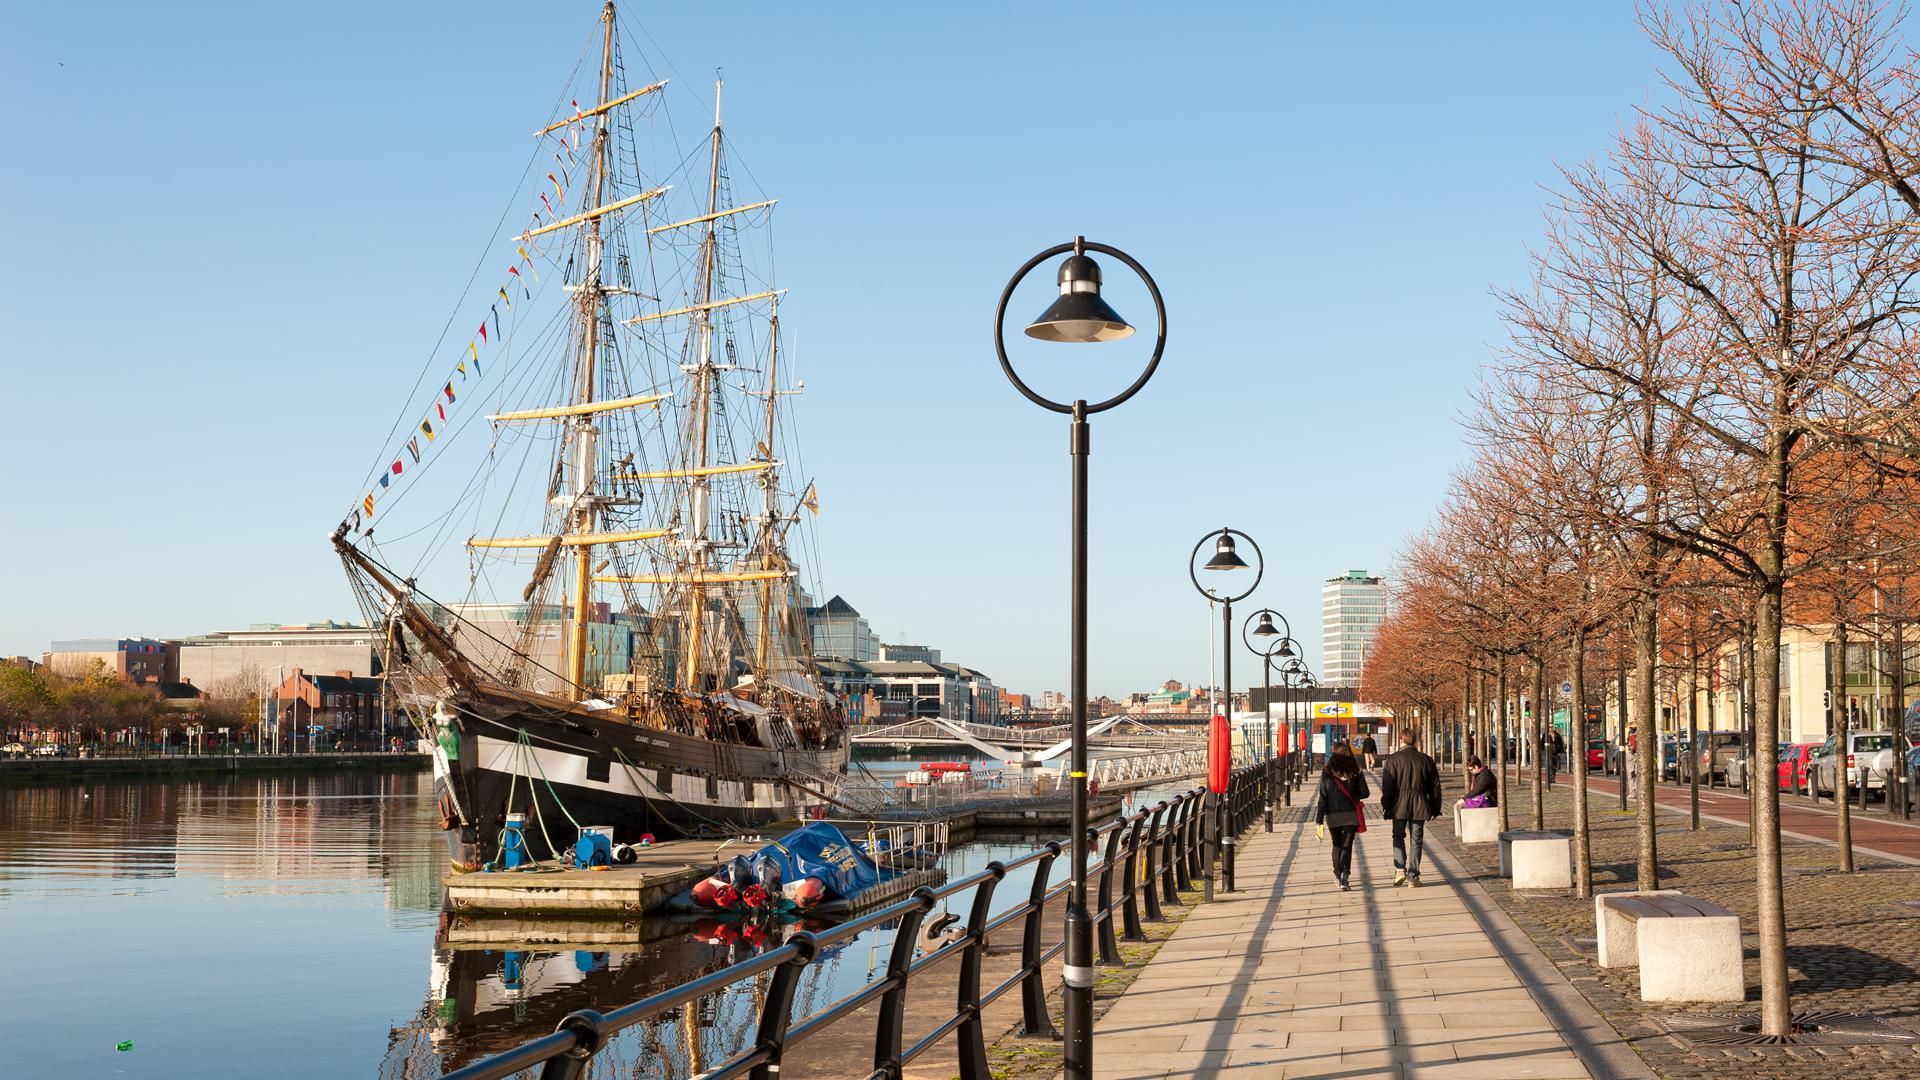 Dublin's north quays have been rejuvenated in recent years